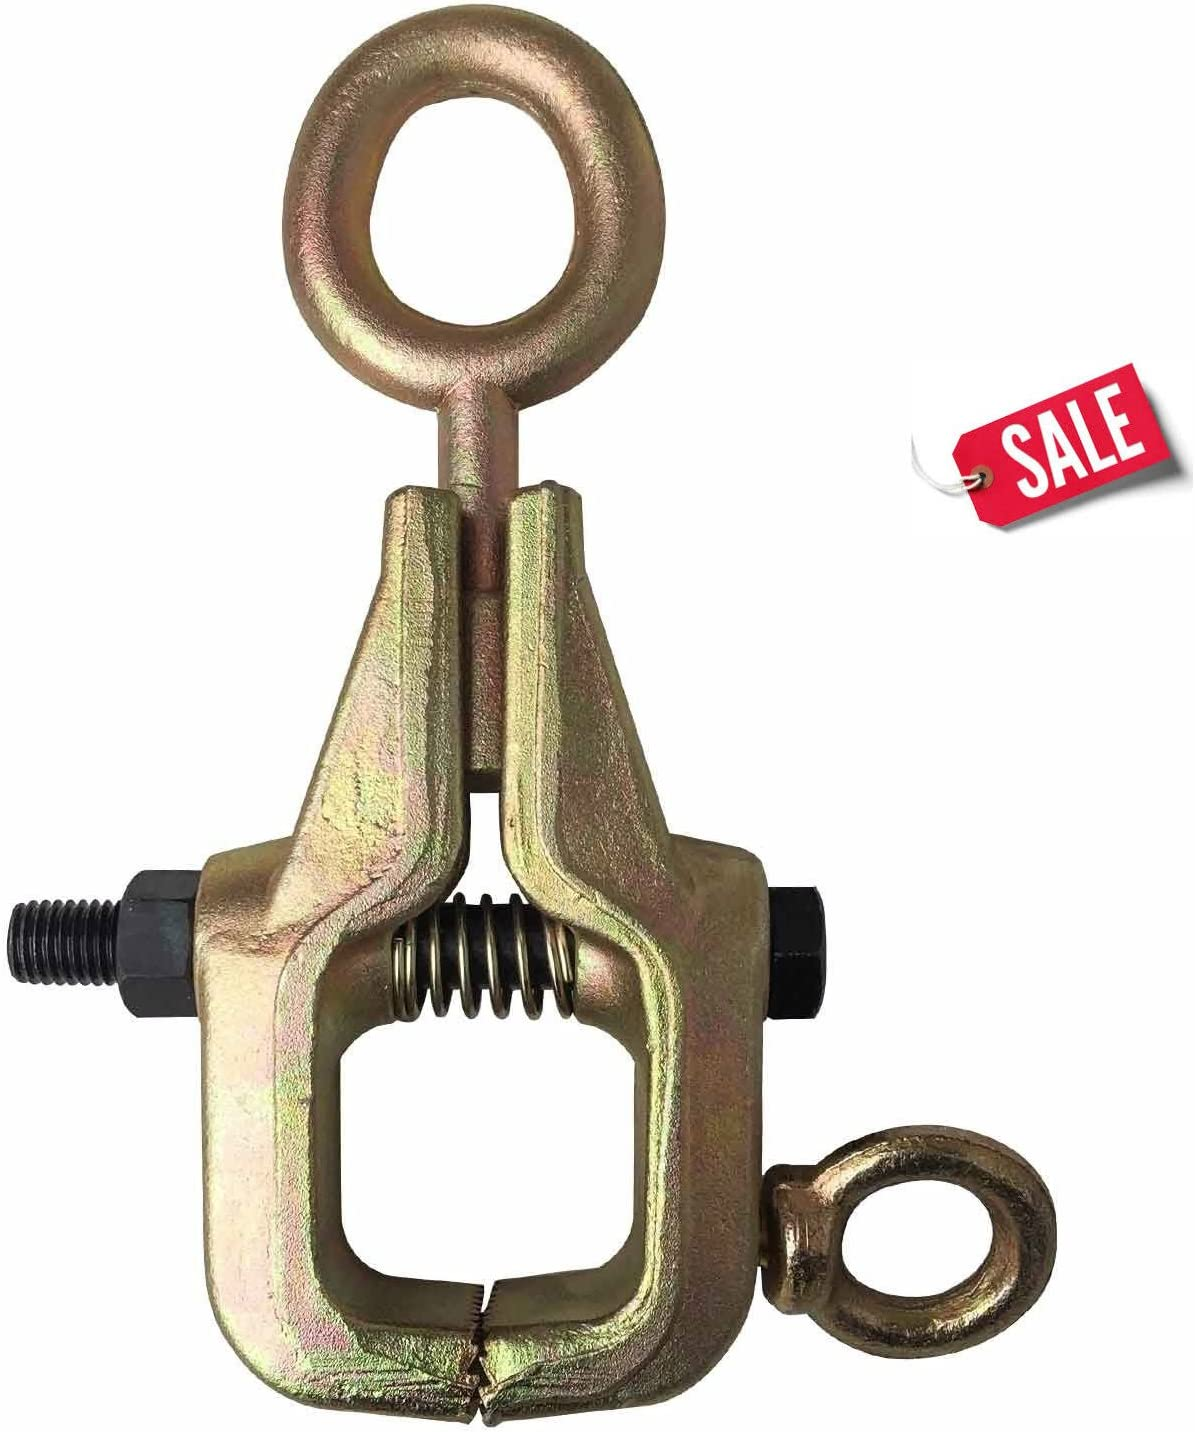 WennoW 2-TON 2-Way Self-Tightening Frame Back Grips /& Auto Body Repair Mini Pull Clamp